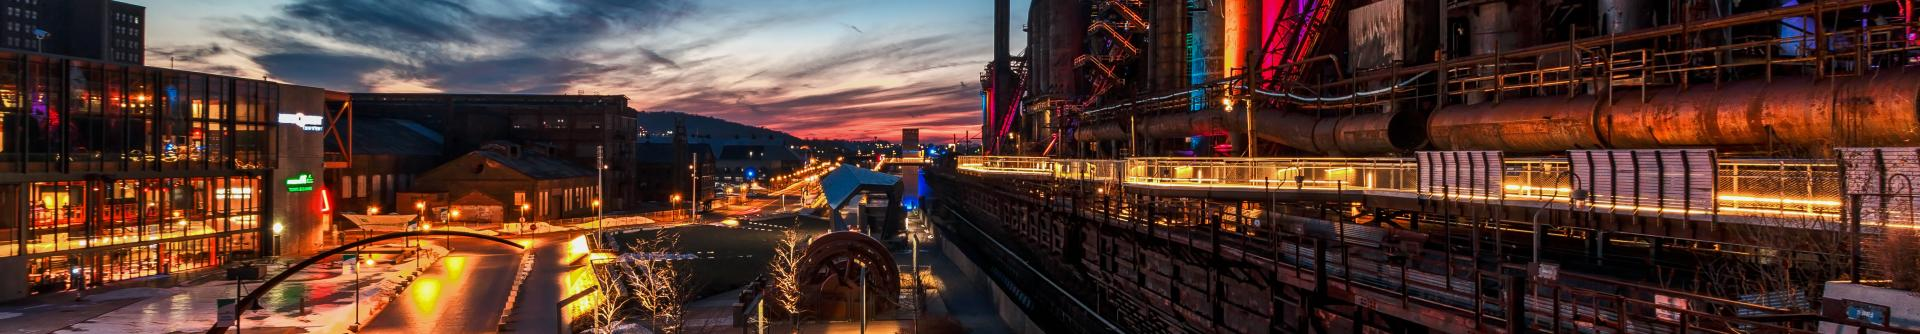 SteelStacks Sunset 01 Discover Lehigh Valley Jason Philibotte Overload Images